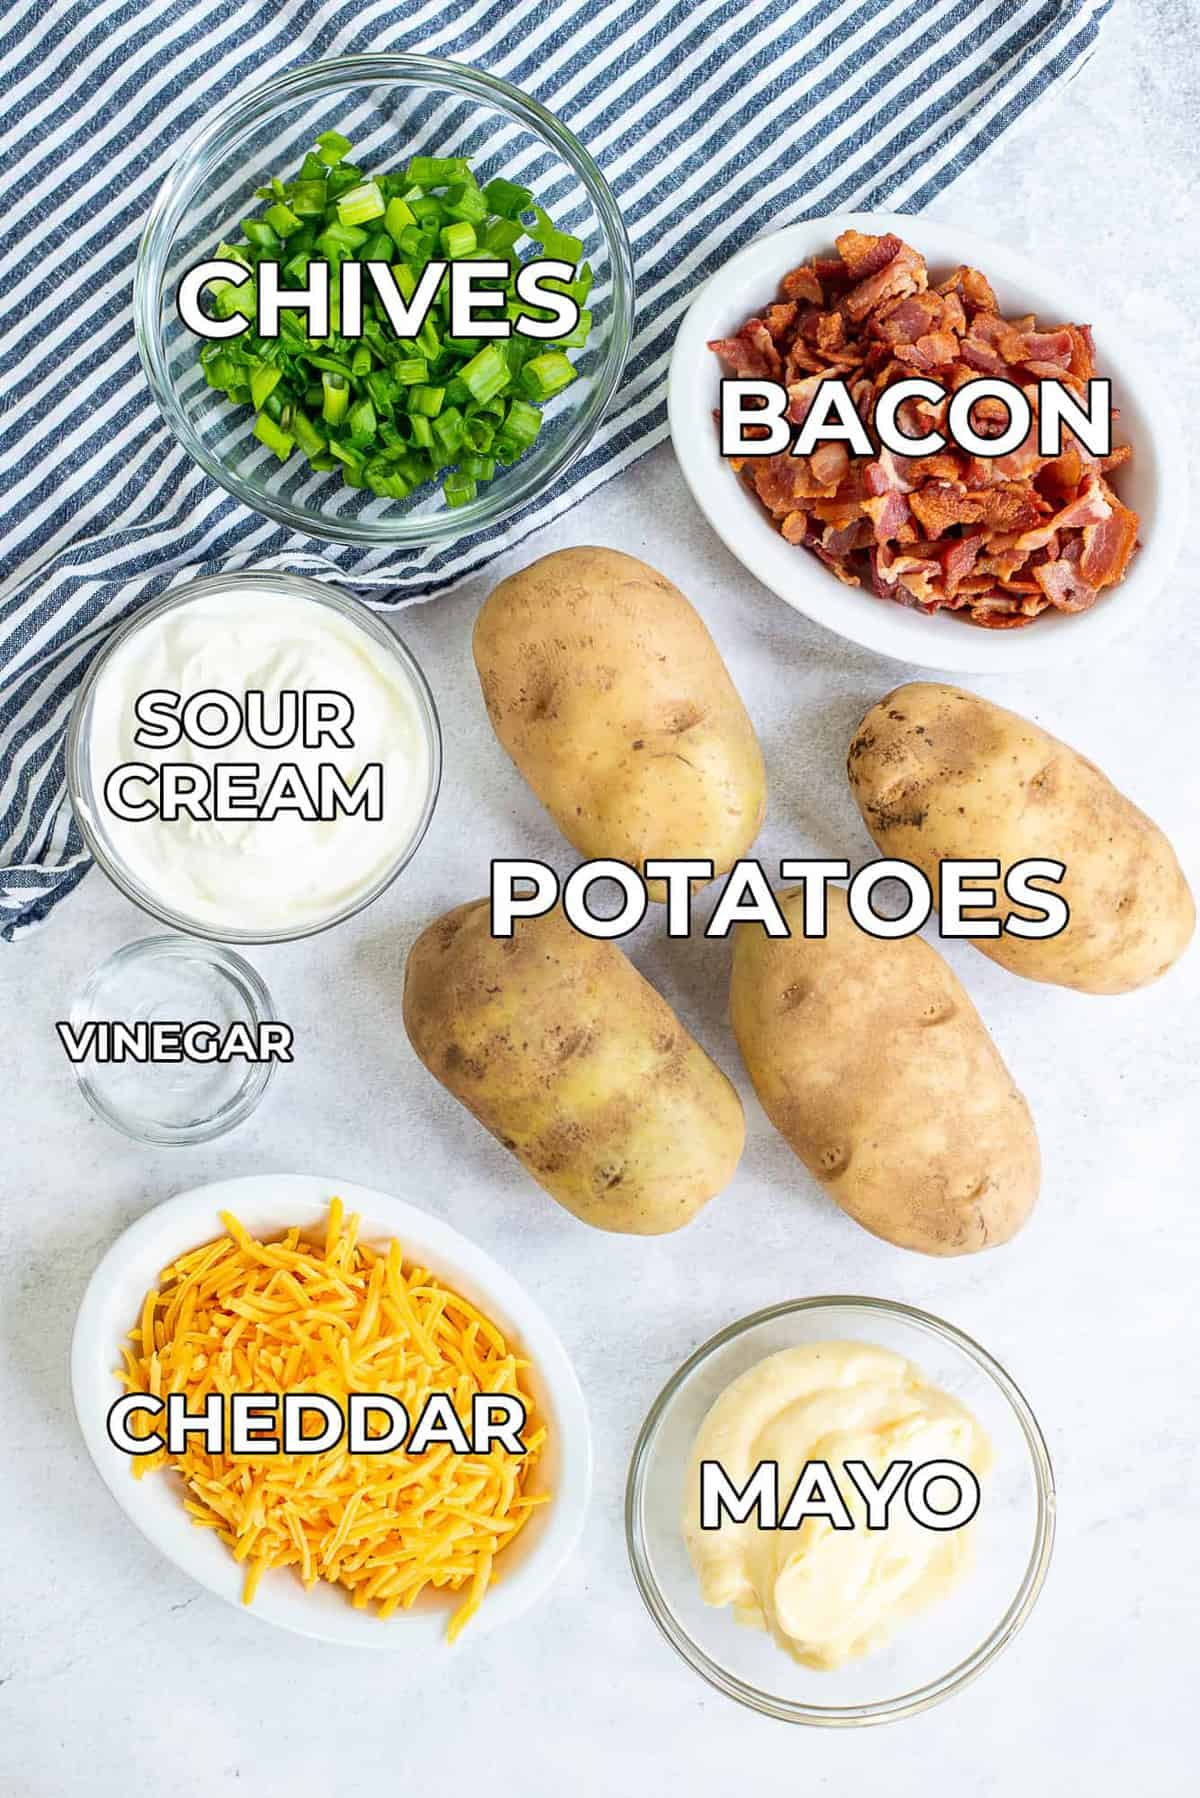 ingredients for baked potato salad.